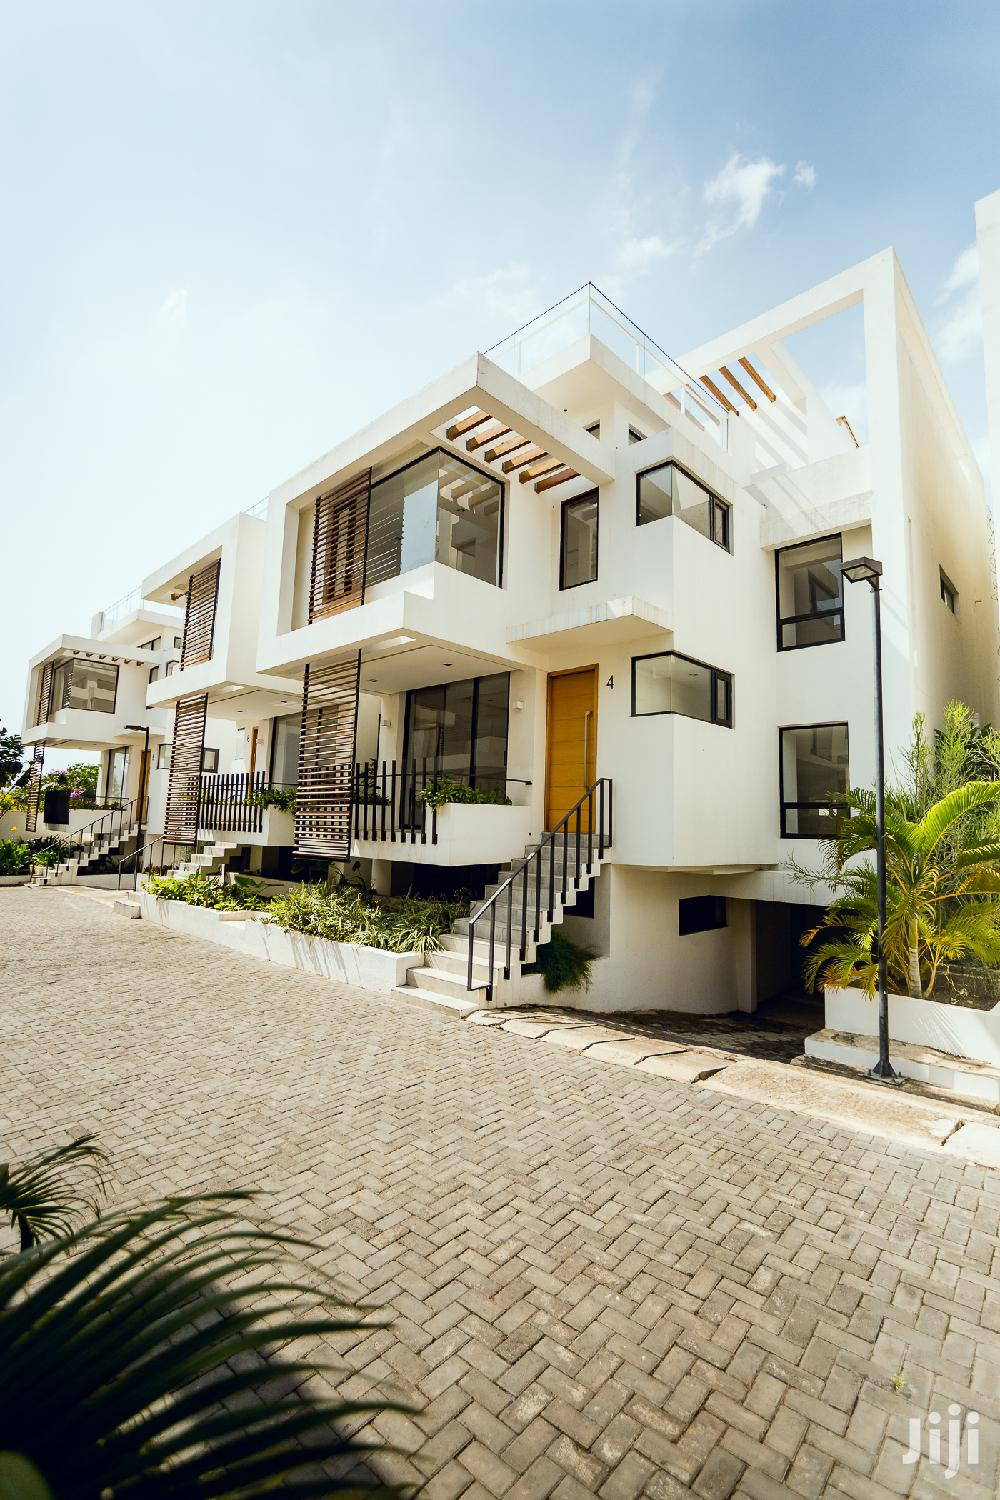 5bedroom Townhouse & 1room Outhouse @ Cantonments For Sale